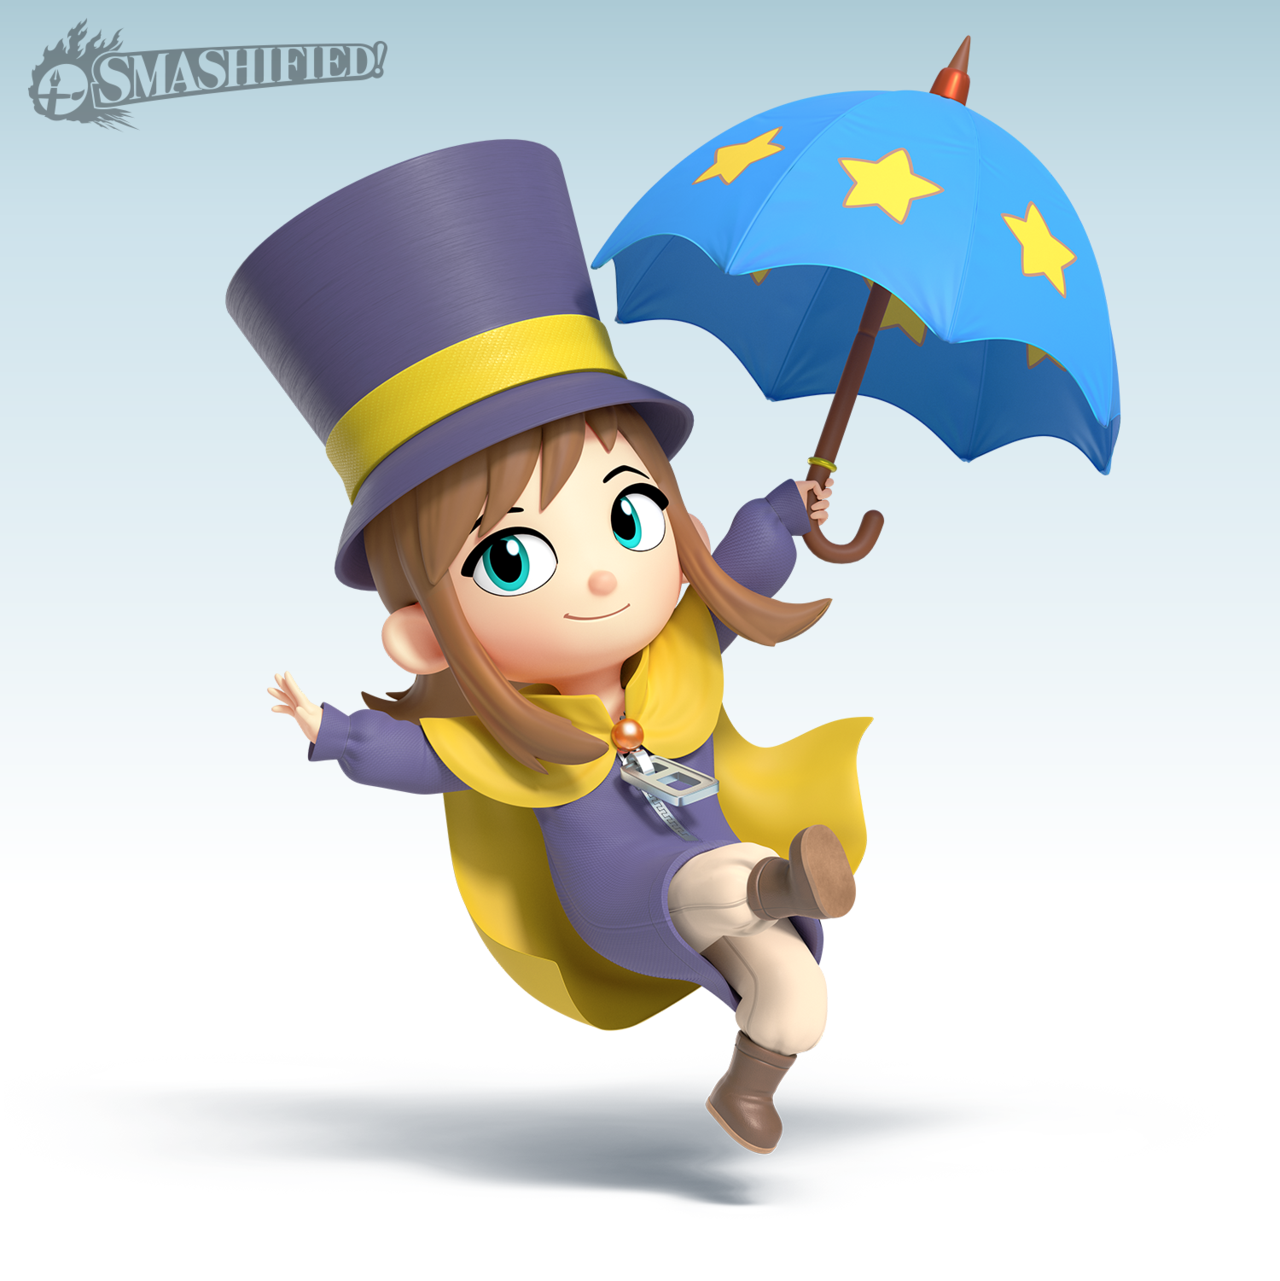 d5a hat kid smashified\